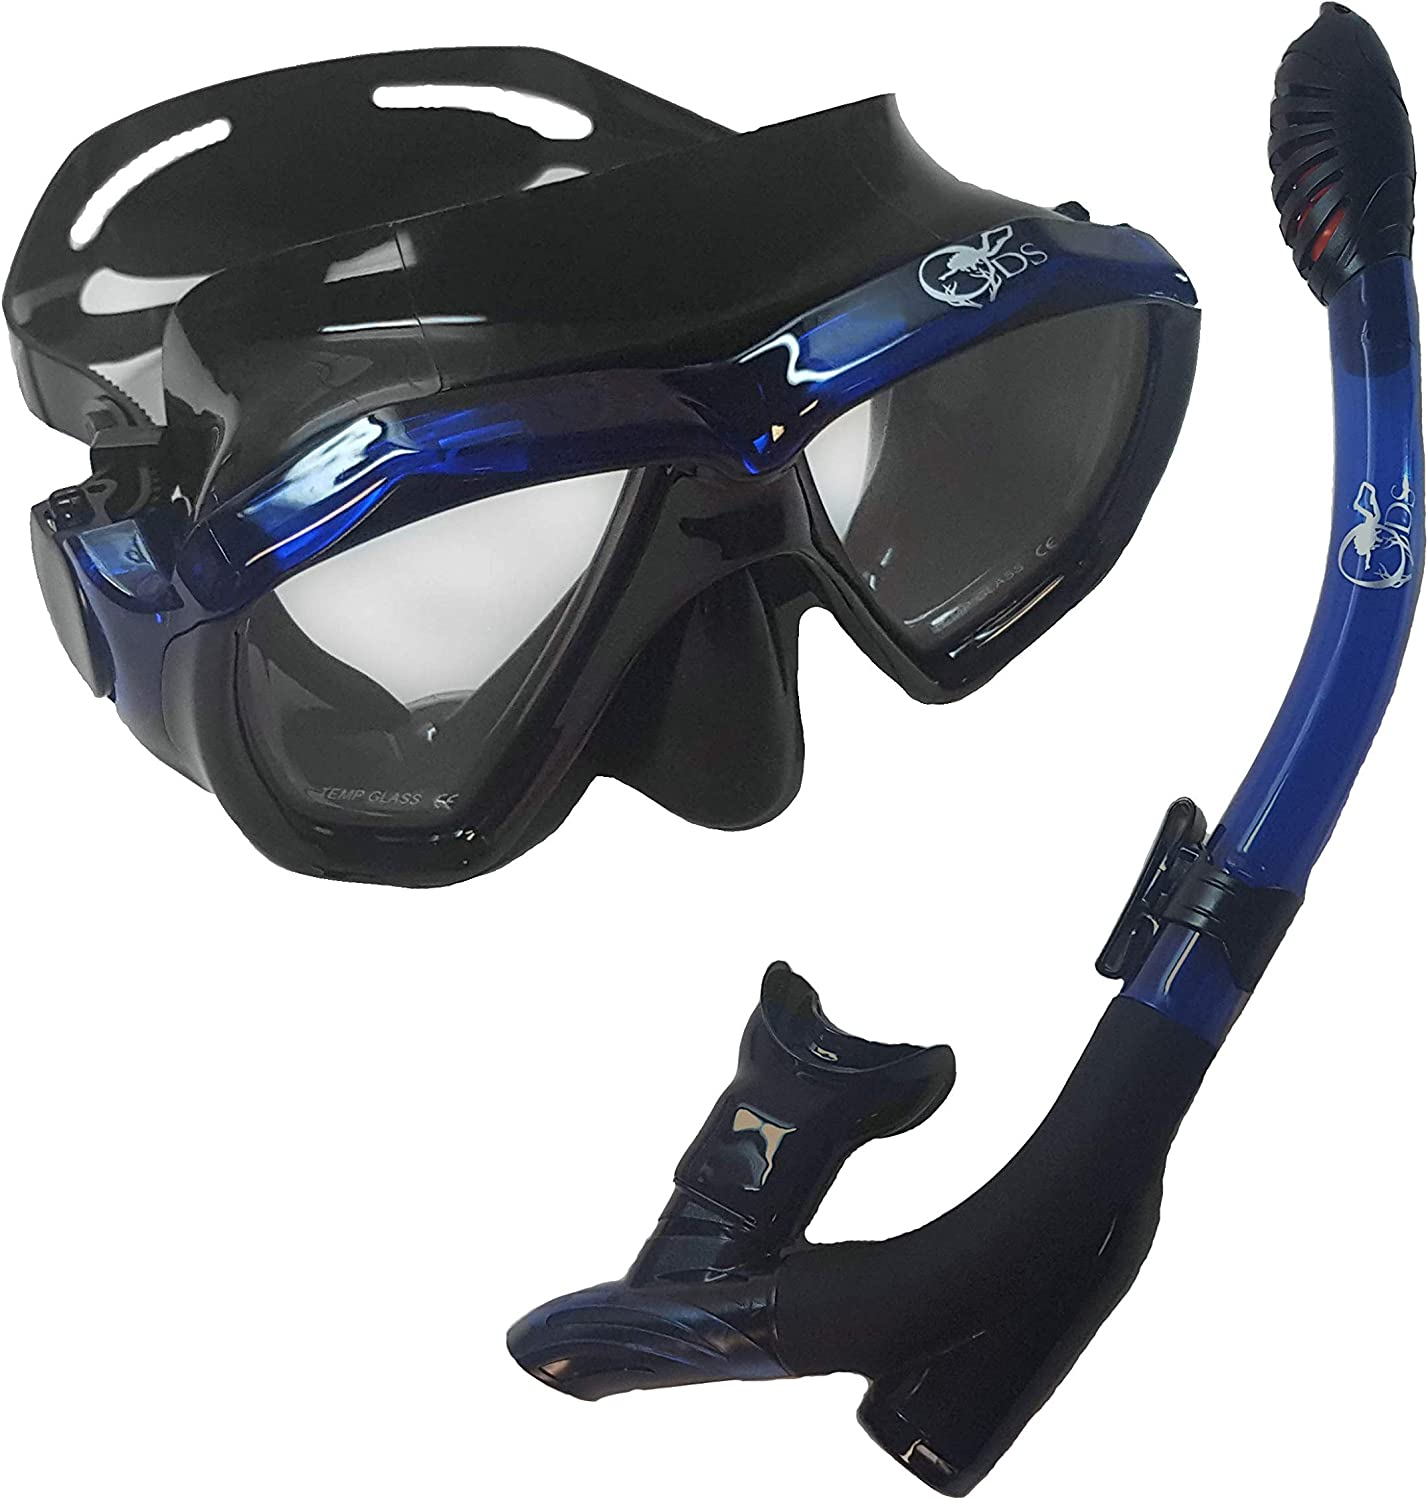 SCUBA Mask and Dry Top Snorkel Set for Adults with Impact Resistant Tempered Glass Anti-Fog Anti-Leak Silicone Skirt and Mouthpiece for Professional Grade SCUBA Snorkeling and Freediving